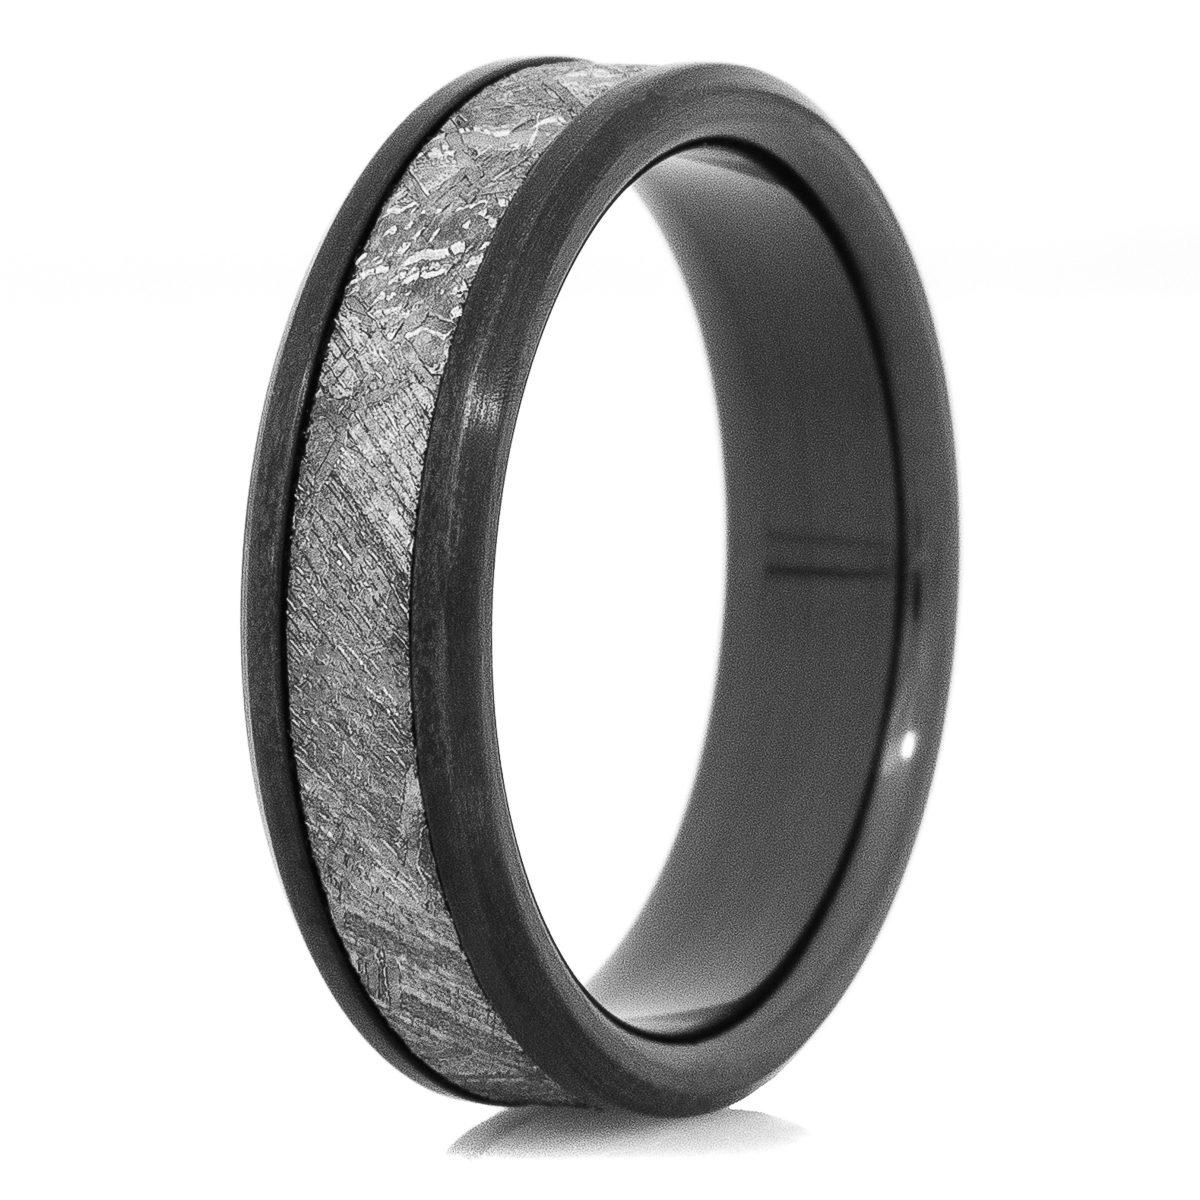 Men's Beveled Edge Black Zirconium Gibeon Meteorite Ring